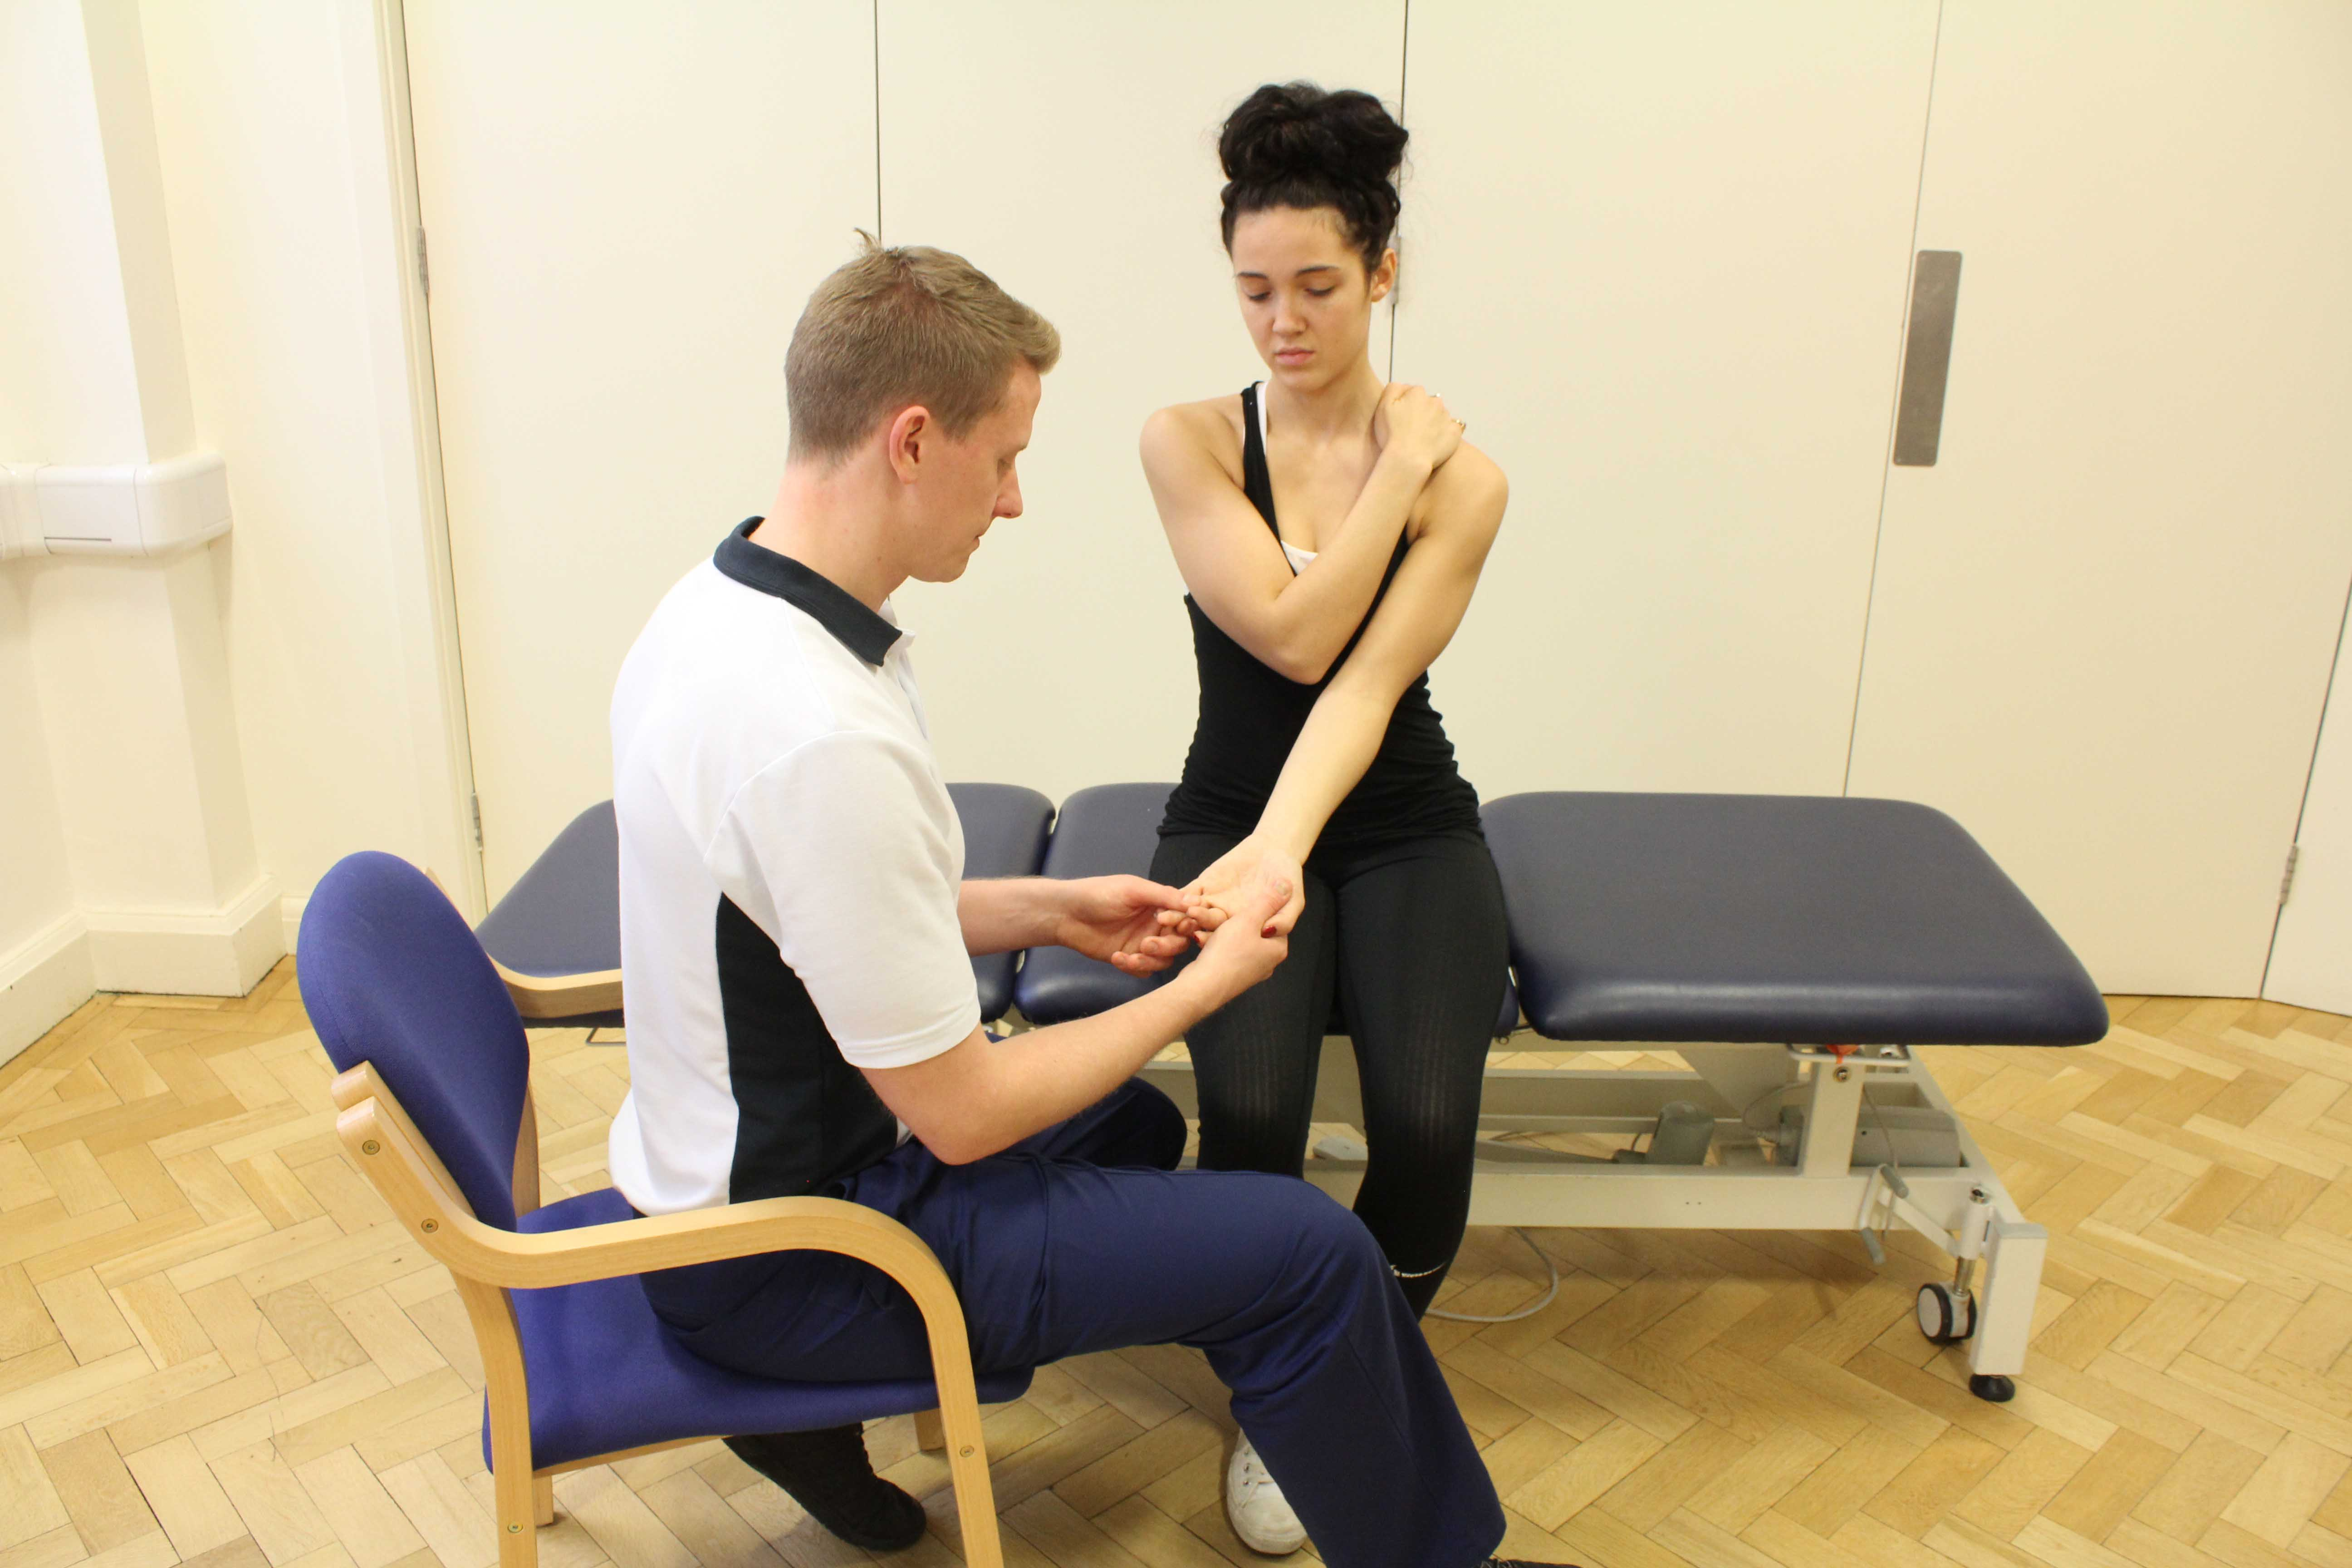 Examination of trigger finger, repetative strain injury by experienced physiotherapist